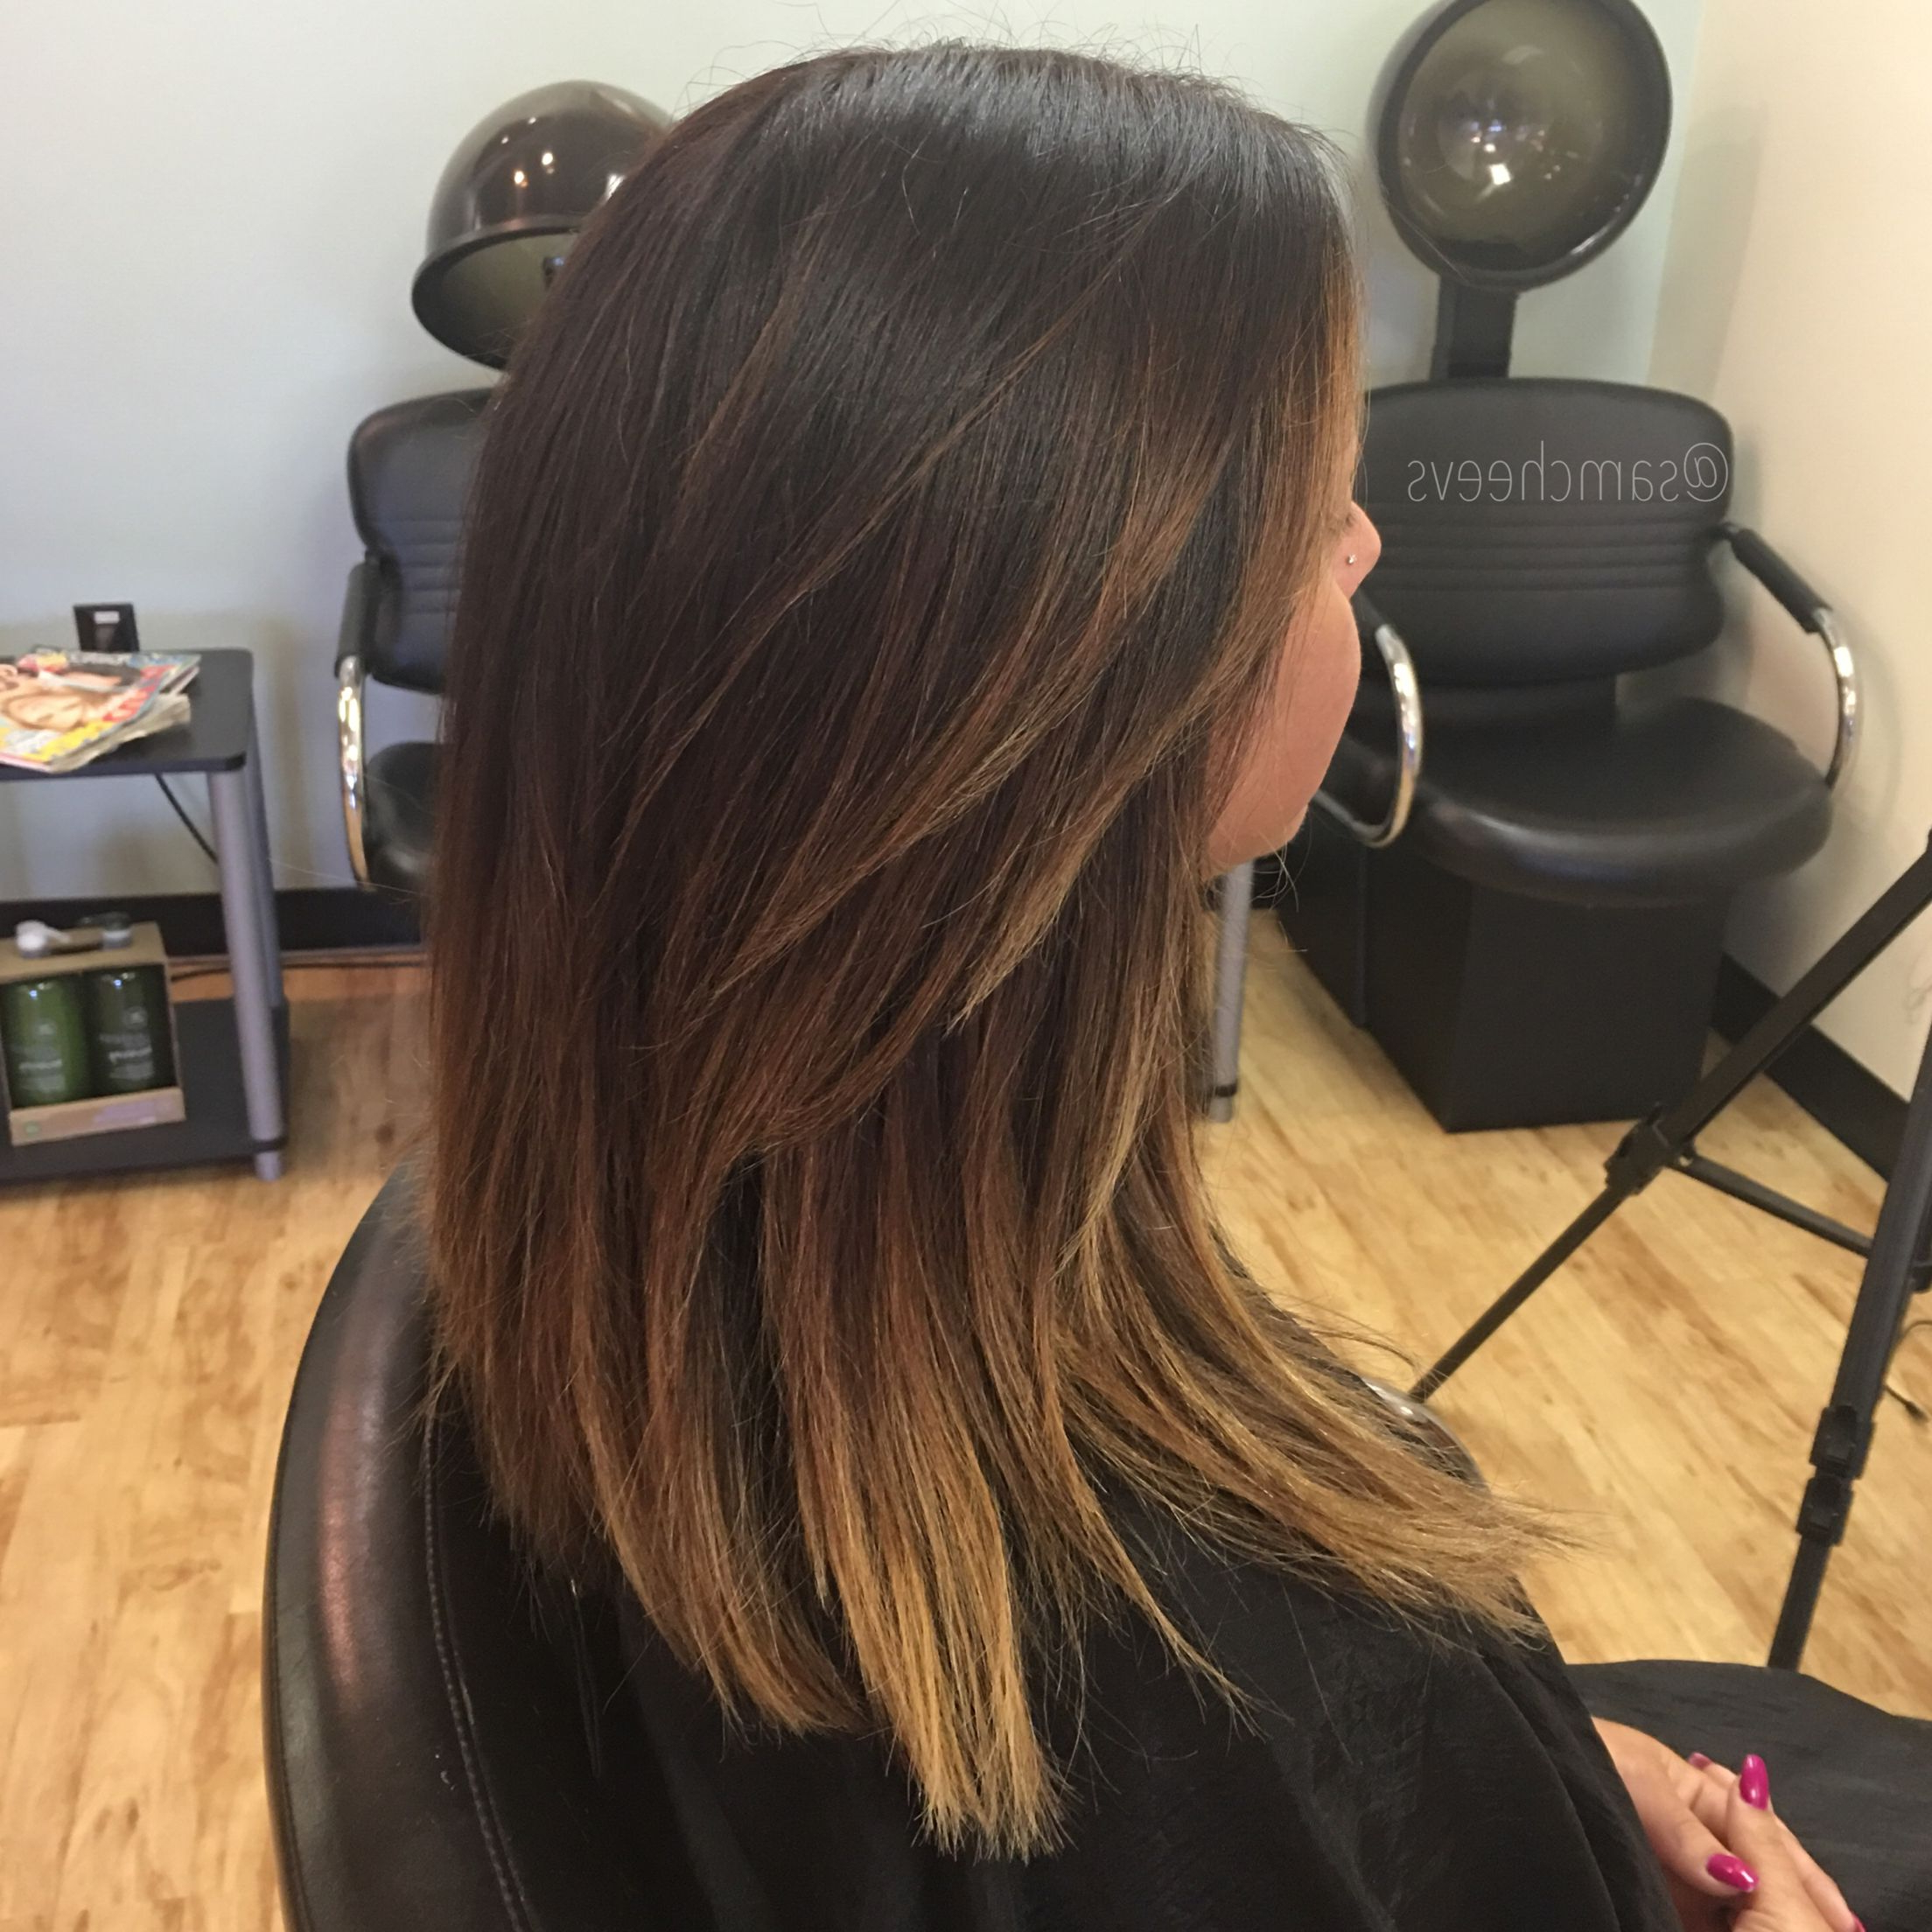 Dark Hair Ombré .summer Hair Styles For Brown Hair (View 12 of 20)